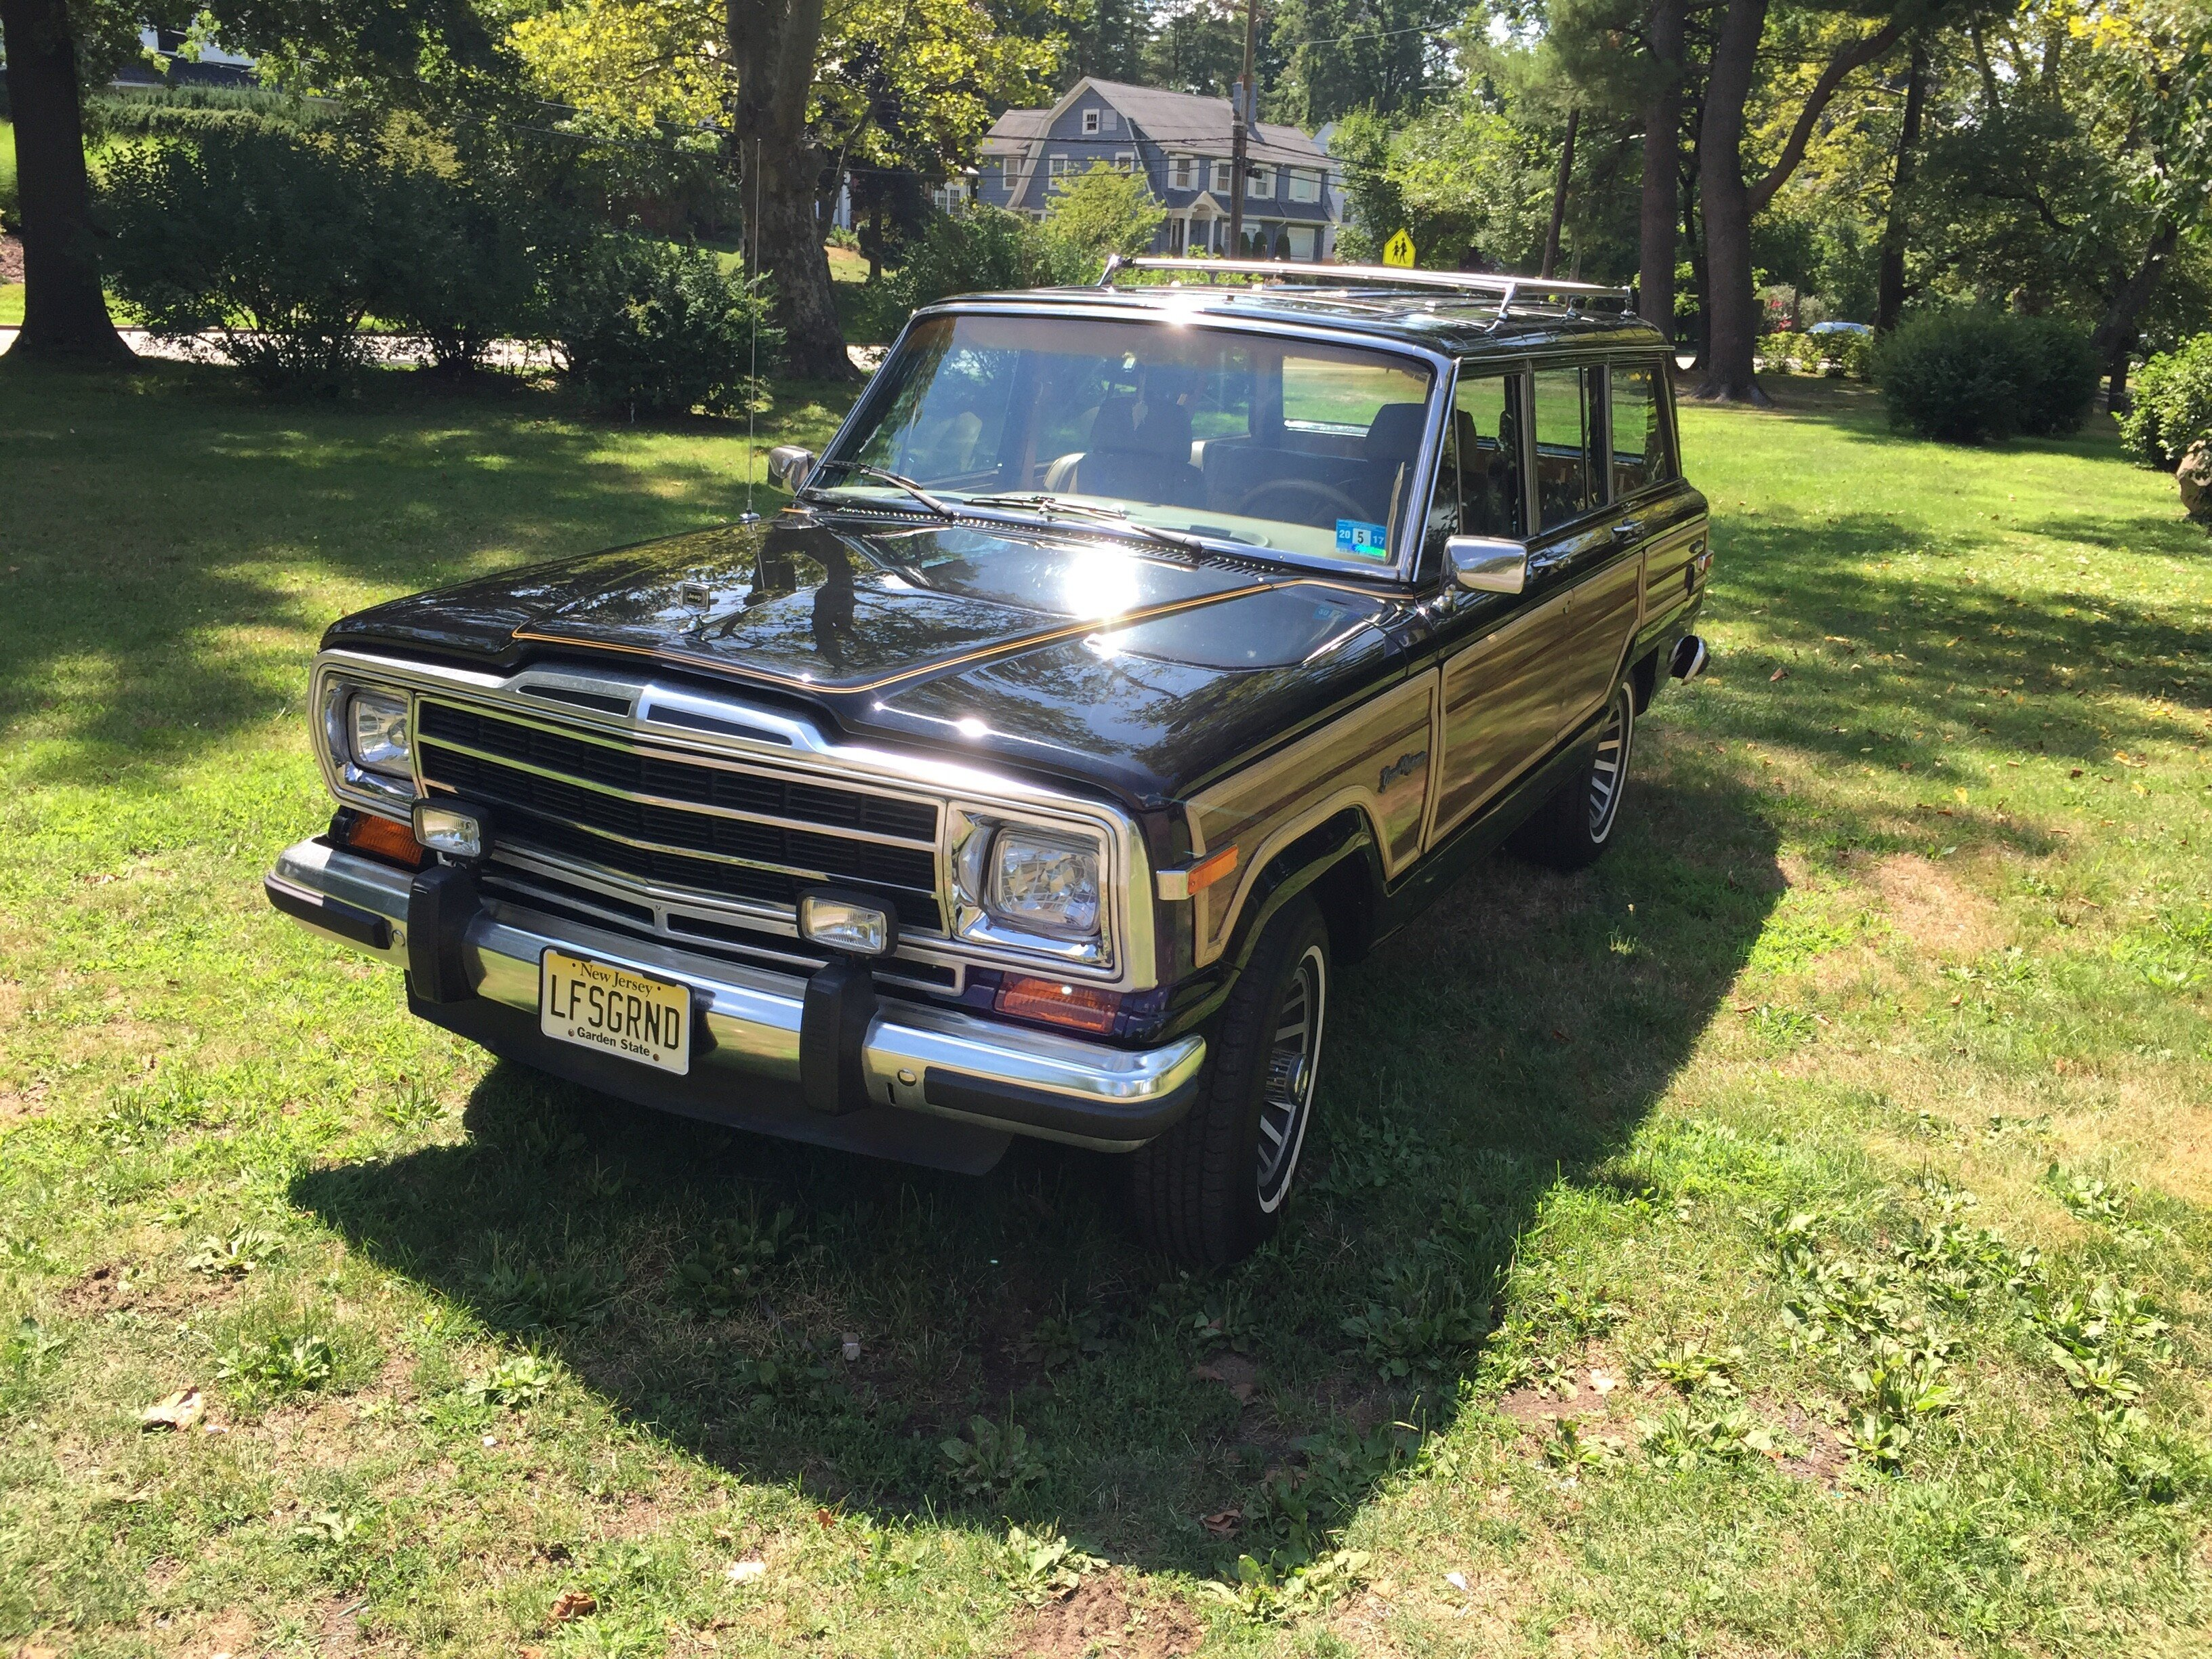 1988 jeep grand wagoneer for sale near montclair new jersey 07042 classics on autotrader 1988 jeep grand wagoneer for sale near montclair new jersey 07042 classics on autotrader